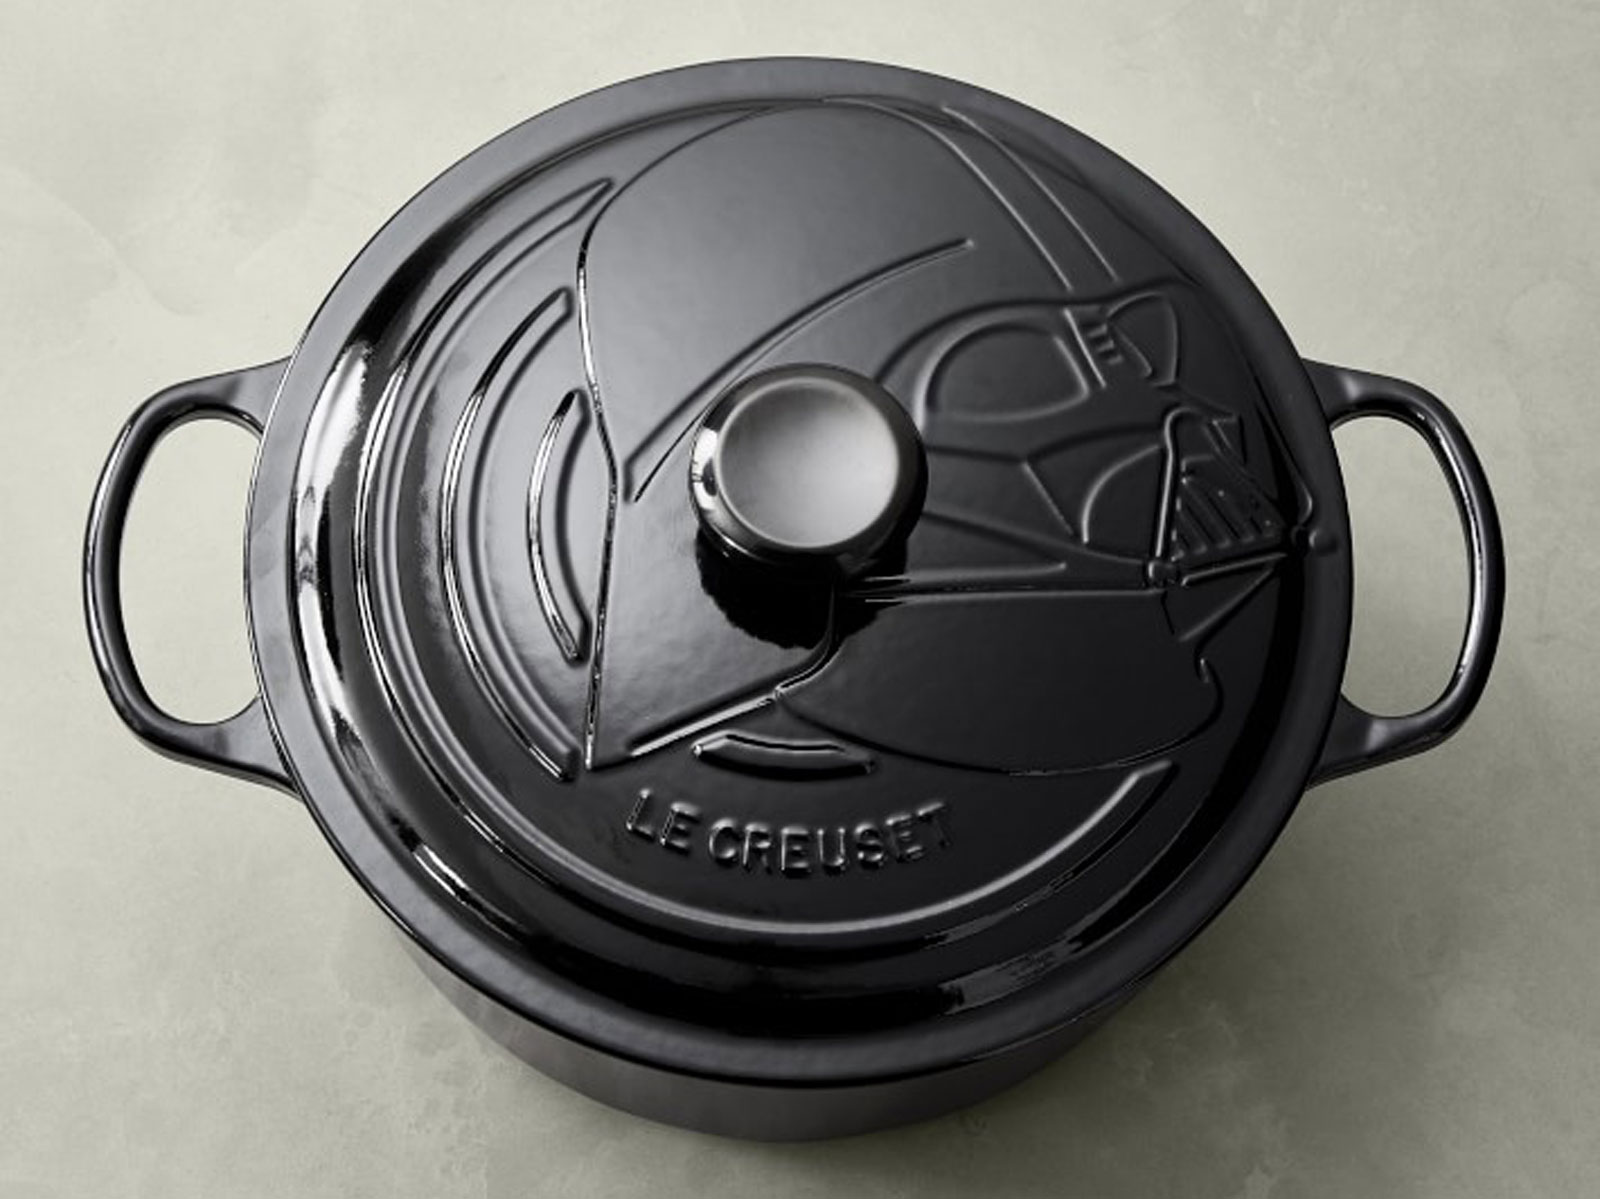 Le Creuset Star Wars Darth Vader Dutch Oven